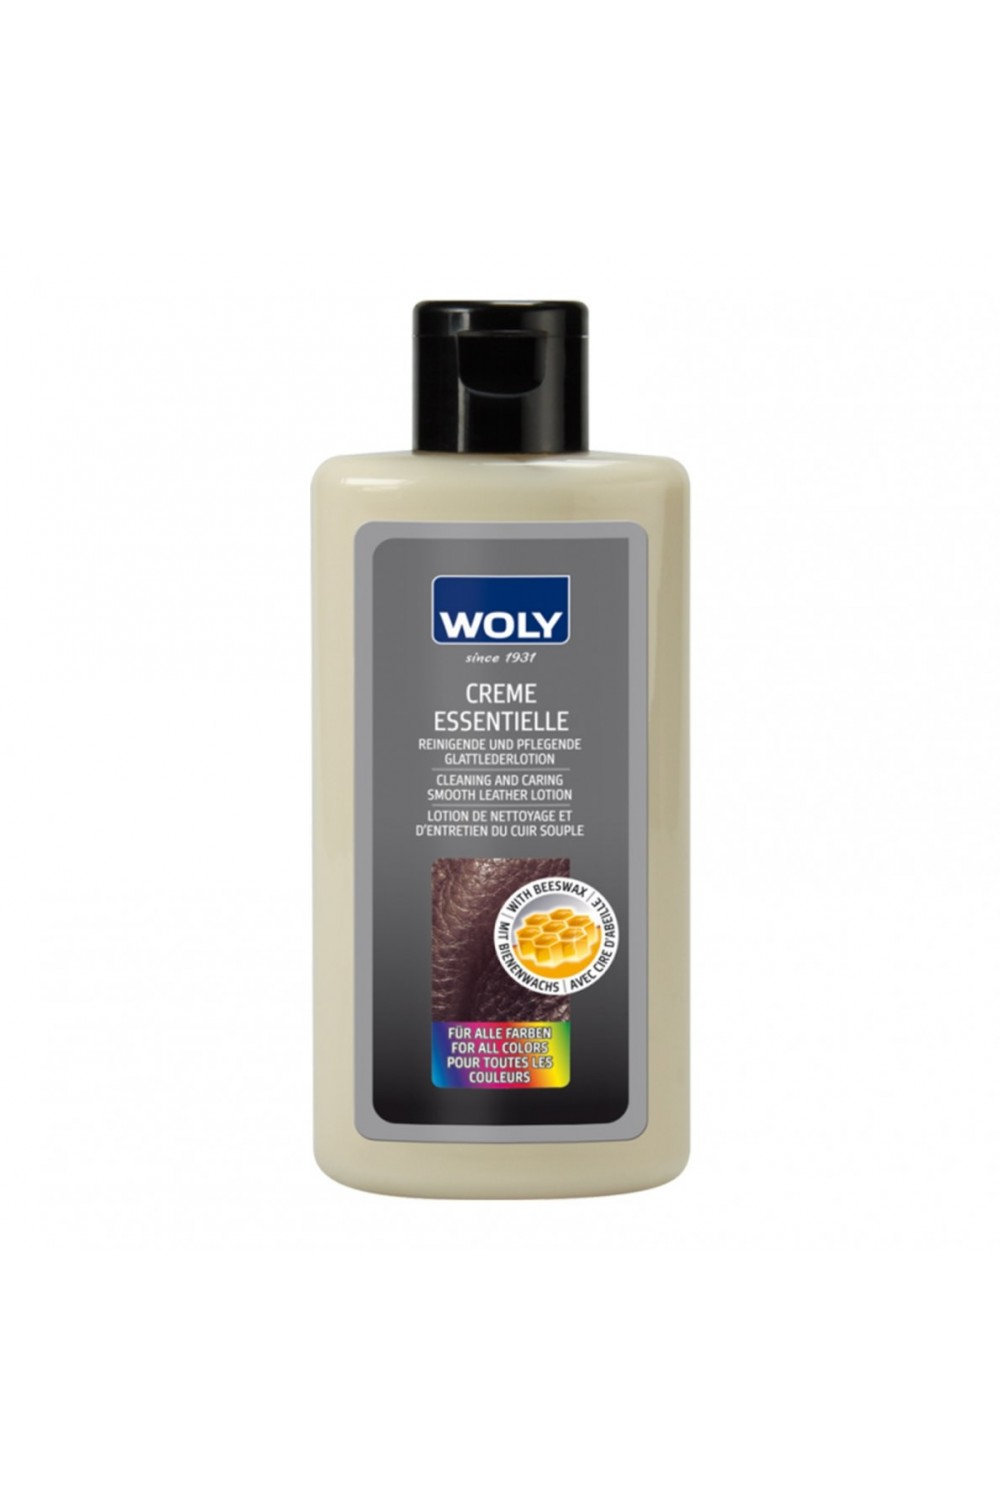 Woly Creme Essentielle Lotion